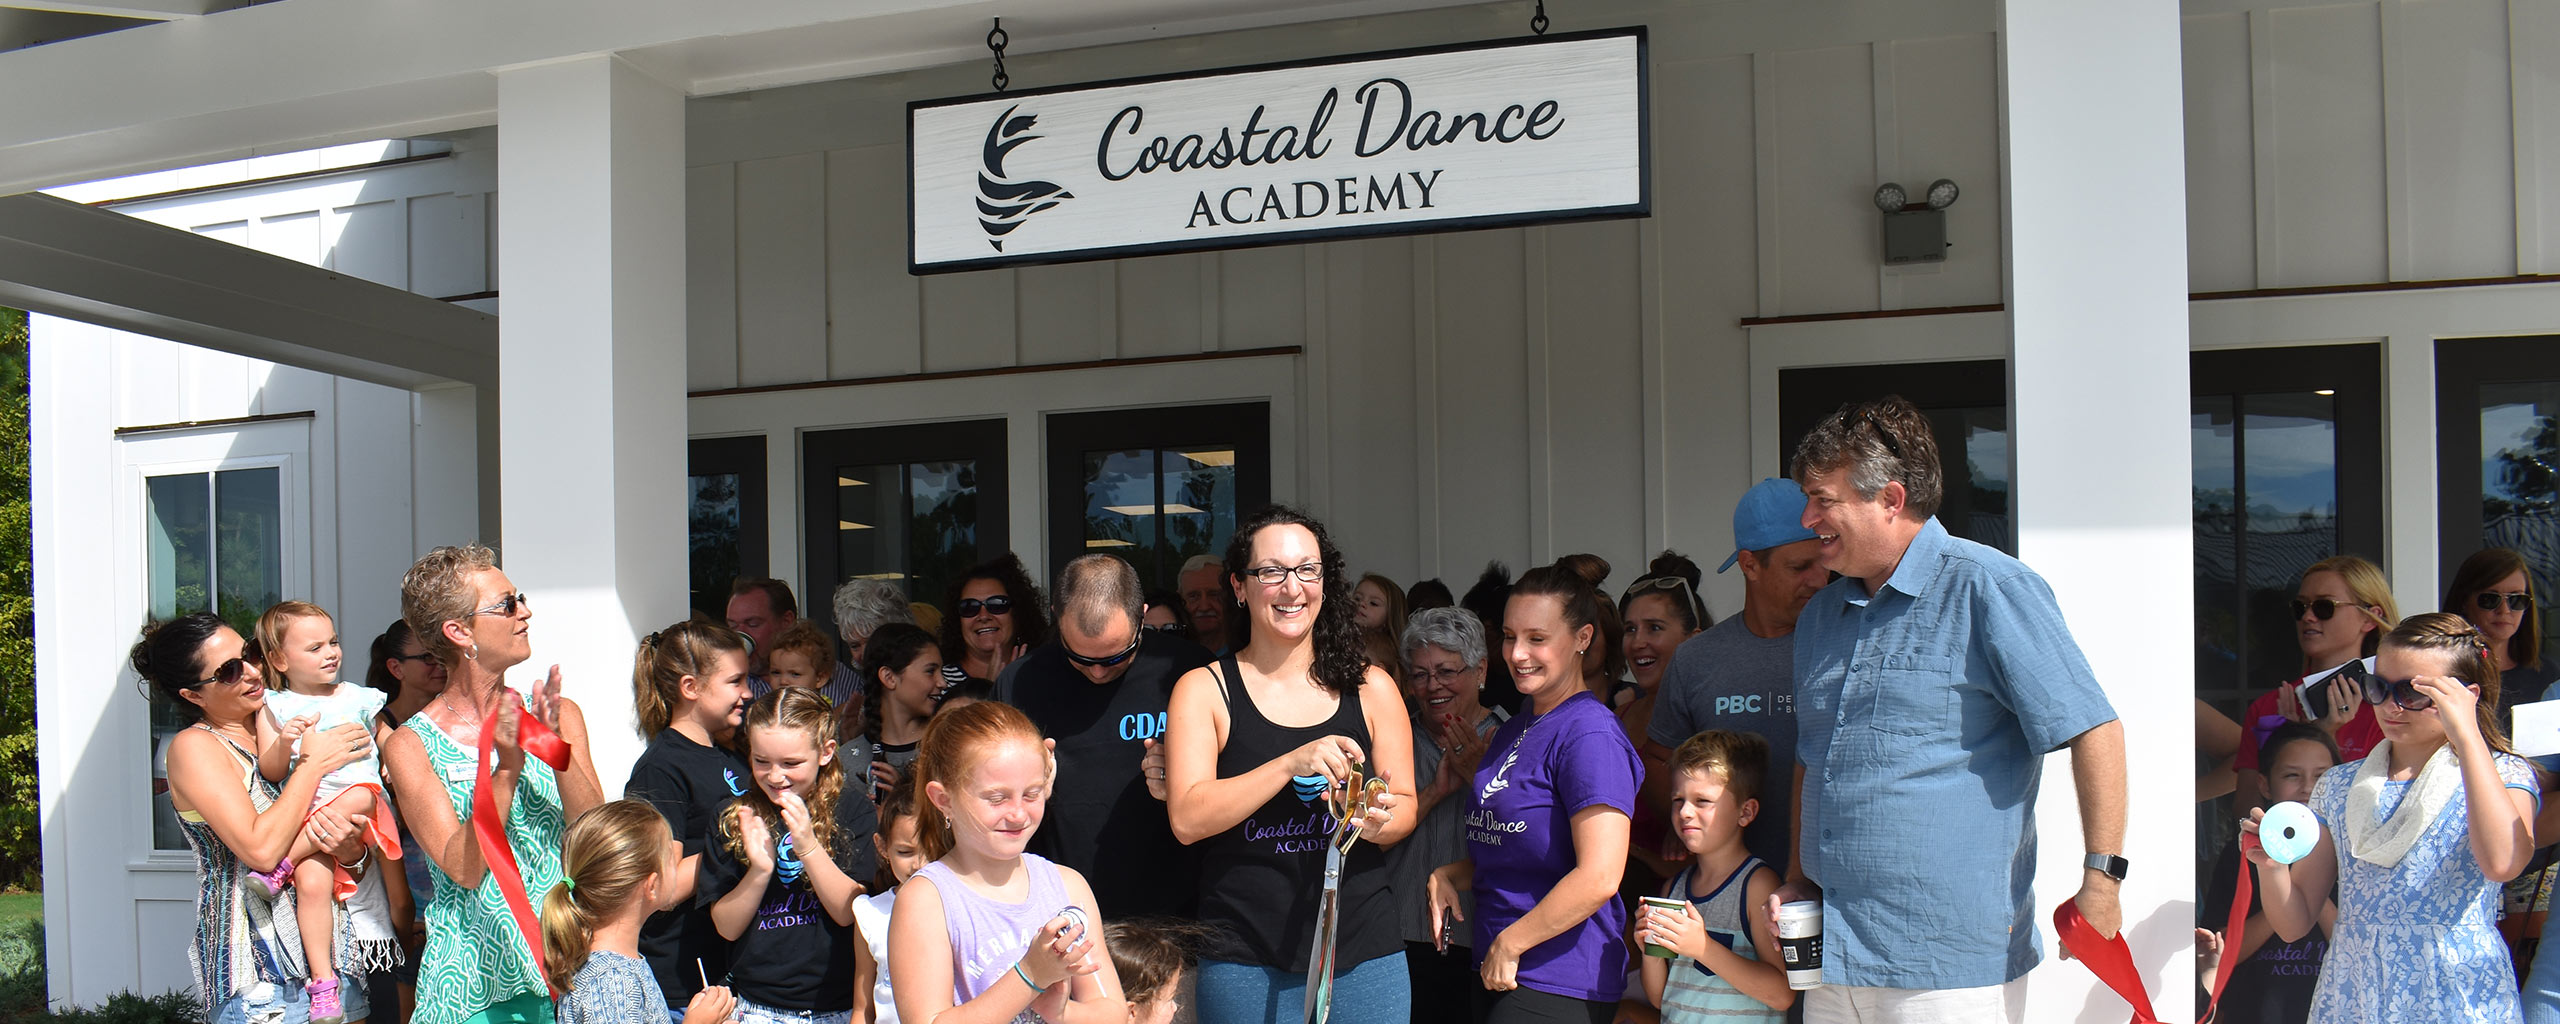 Group in front of Coastal Dance Academy